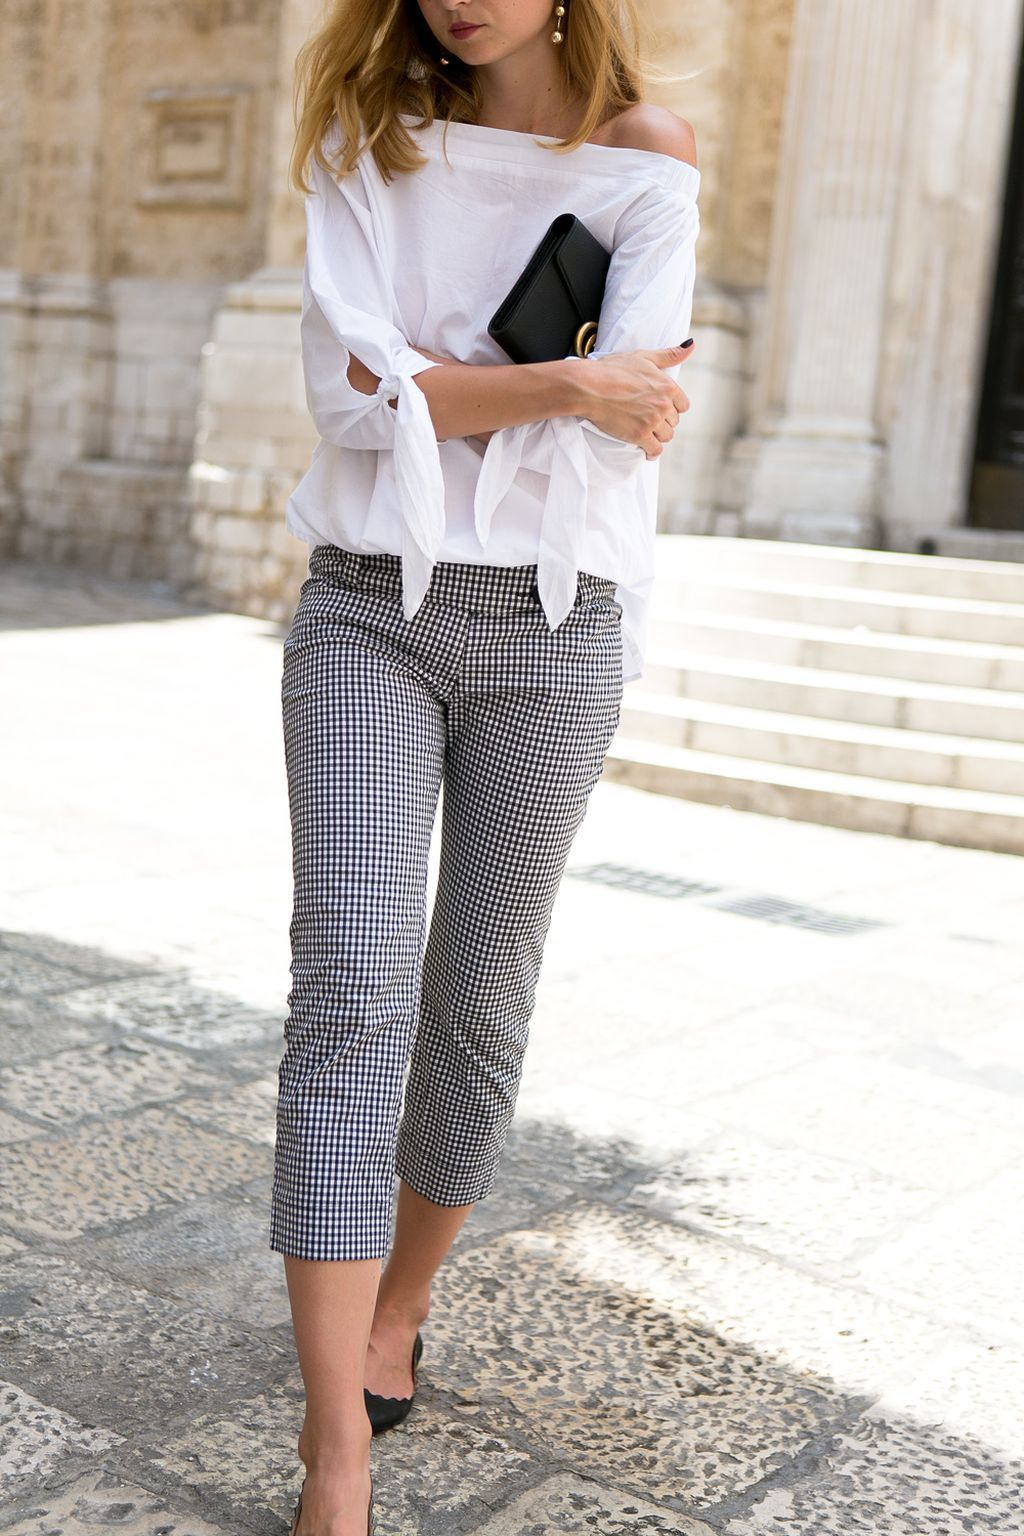 30 Chic Summer Outfit Ideas Street Style Look. | shoes